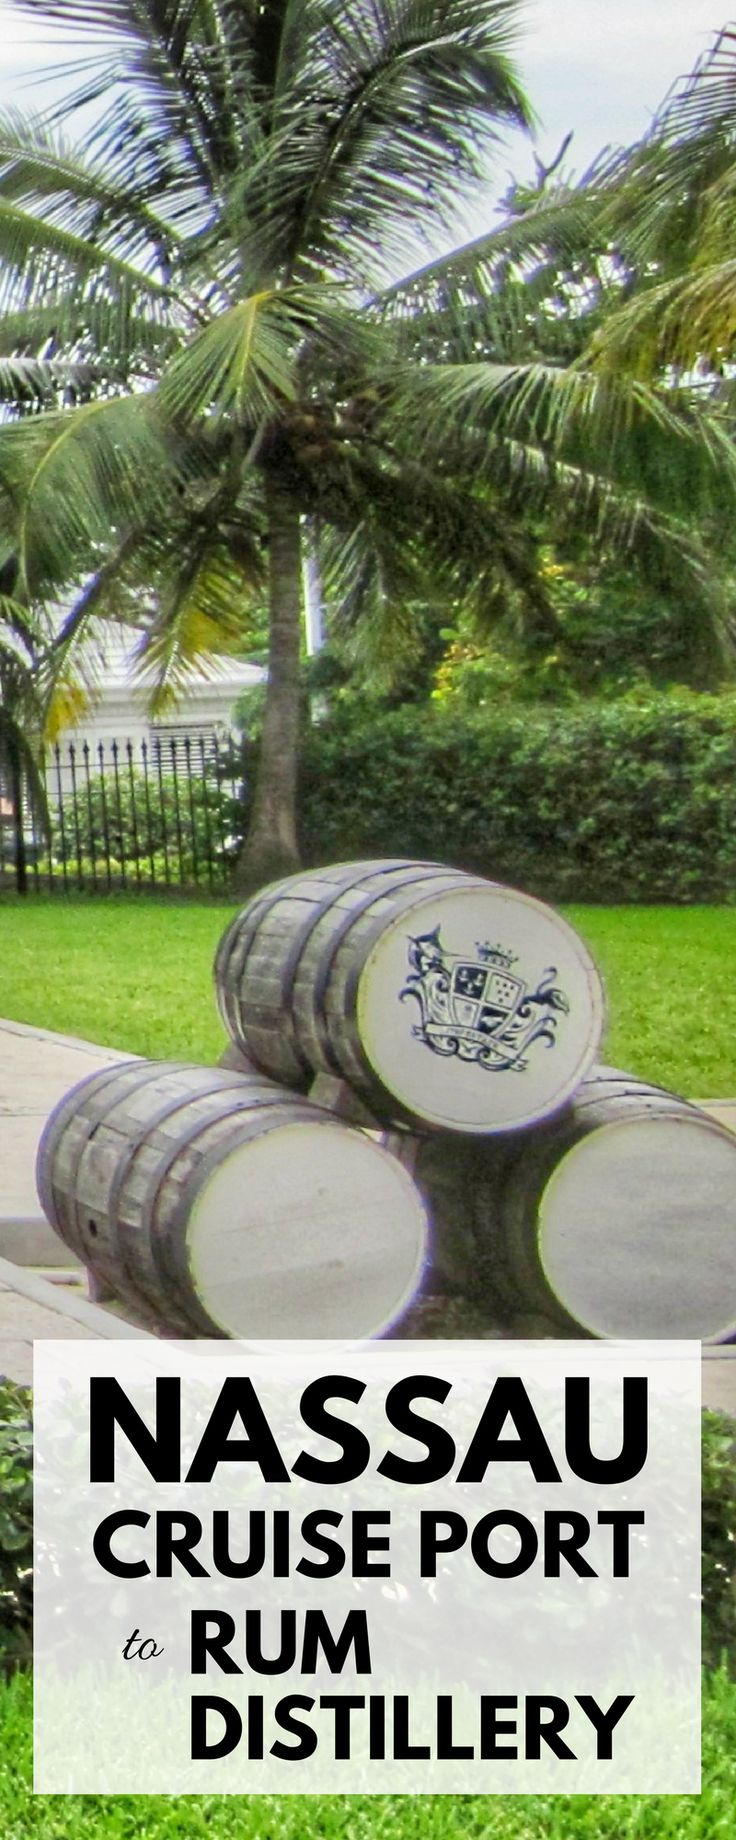 Nassau rum tour: Nassau Bahamas drinks at John Watlings rum distillery. For things to do in Nassau instead of excursions, beach, Atlantis, or Paradise Island during Bahamas cruise vacation, cruise tips and ideas for activities near Nassau cruise port with Caribbean rum factory! You won't travel far from downtown and can get a little shopping in too at mini market stands! Map of Nassau with points of interest. For what to pack for Caribbean cruise, beach outfits for the cruise packing list…